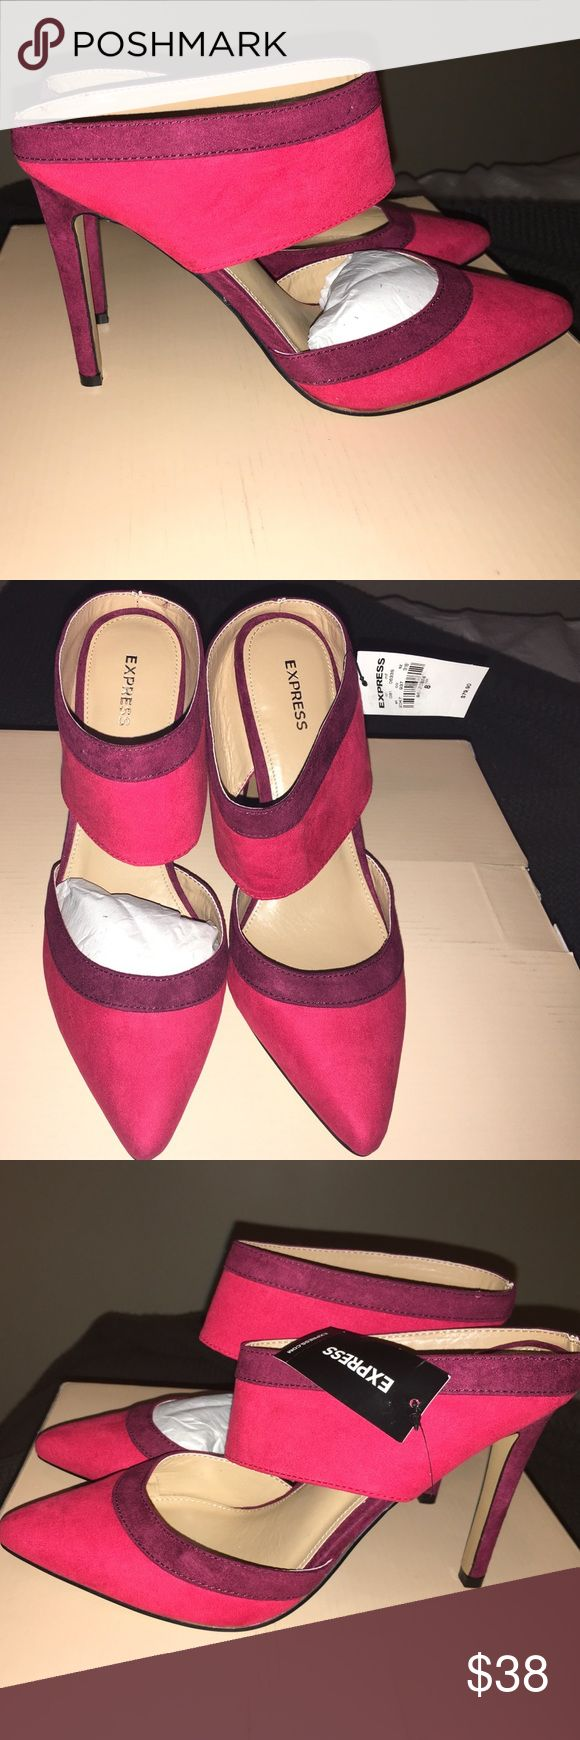 Women's Mule Shoes Pointy toe, open back,red, 3 1/2-4 inch heel. Runs true to size. Express Shoes Mules & Clogs